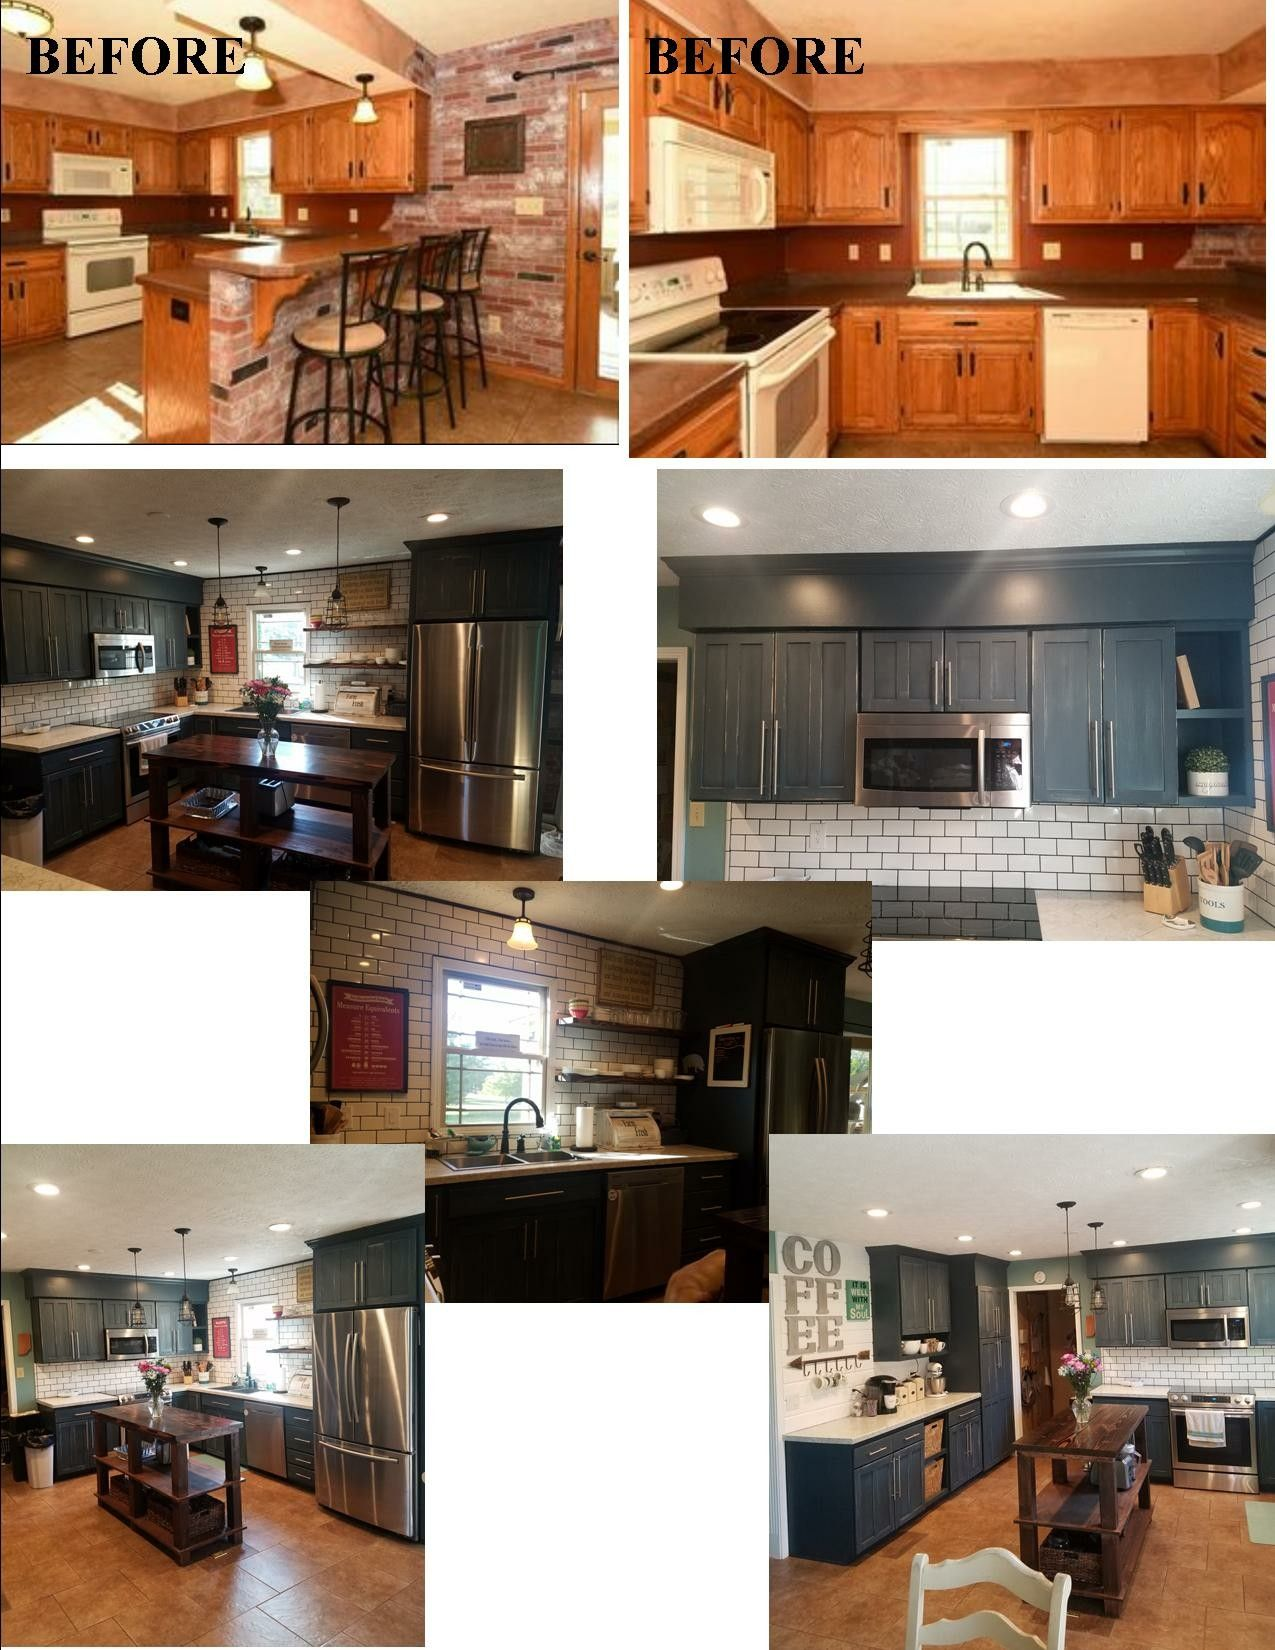 Beforeafter Kitchen Remodel, Gray Cabinets, Diy, Subway Tile, Shiplap,